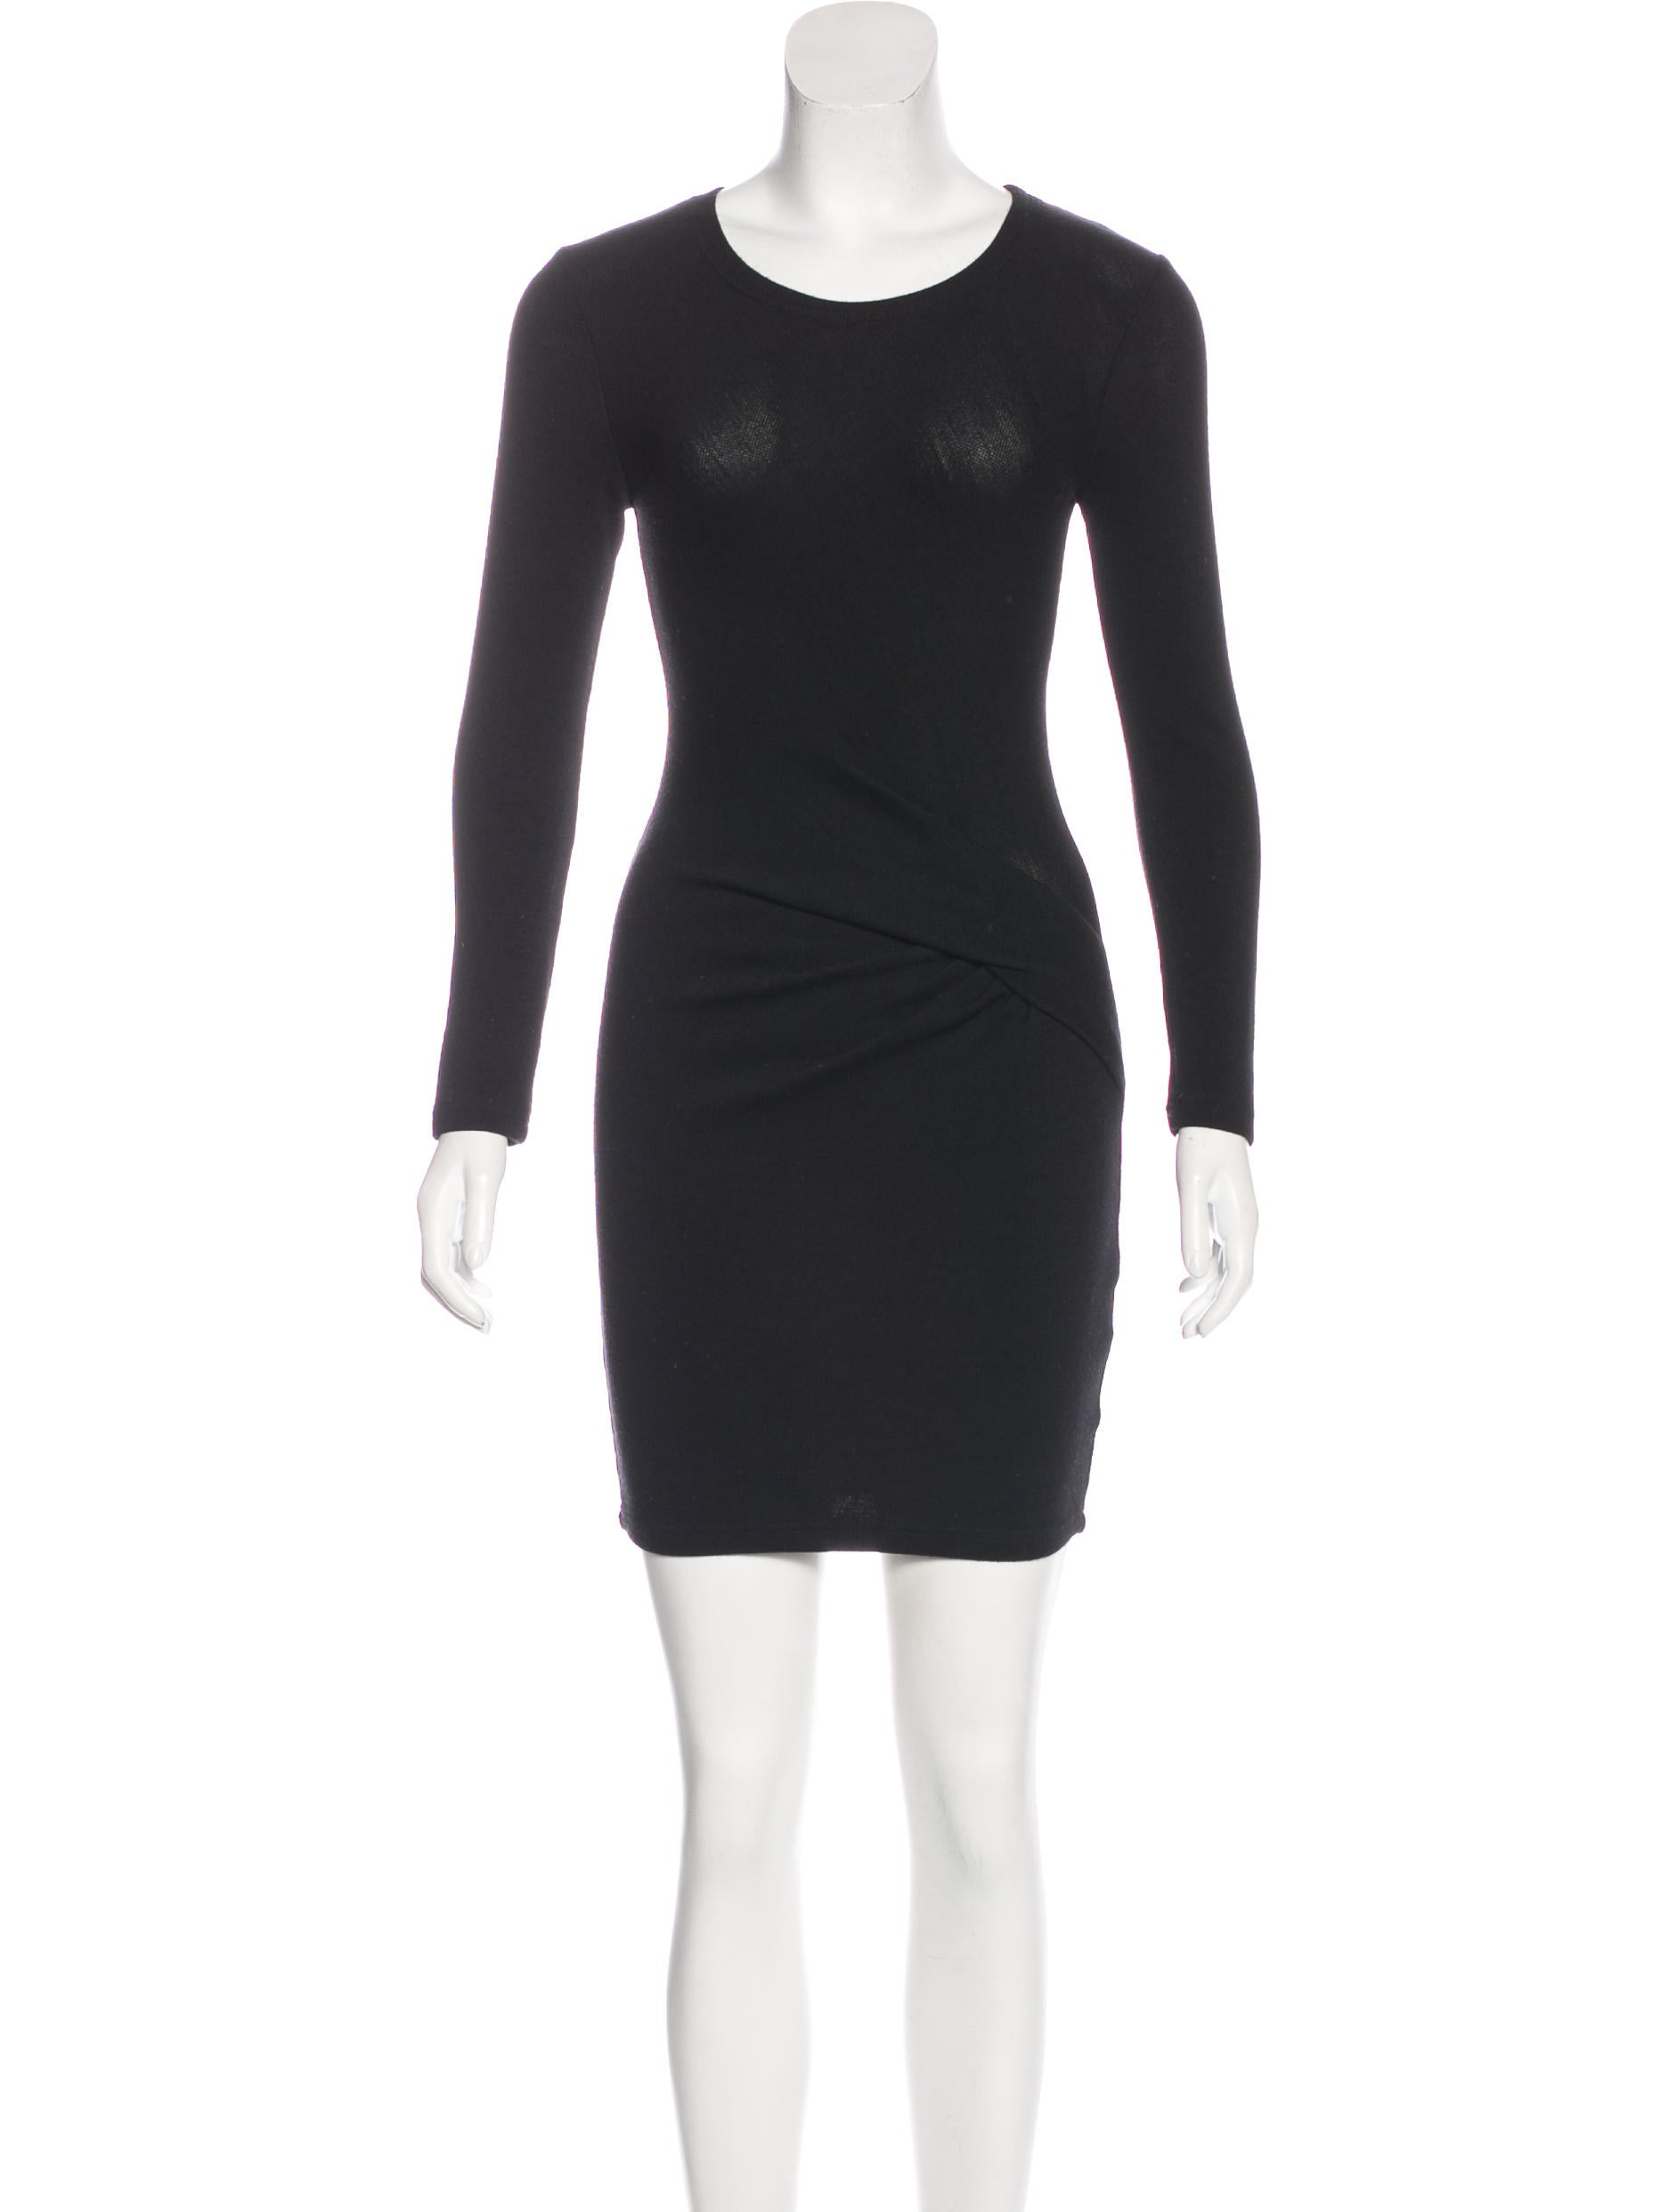 Outlet Discount Top Quality Sale Online Iro Aenor Wool-Blend Dress Cheap Sale Browse Discount Get To Buy 3oDljI